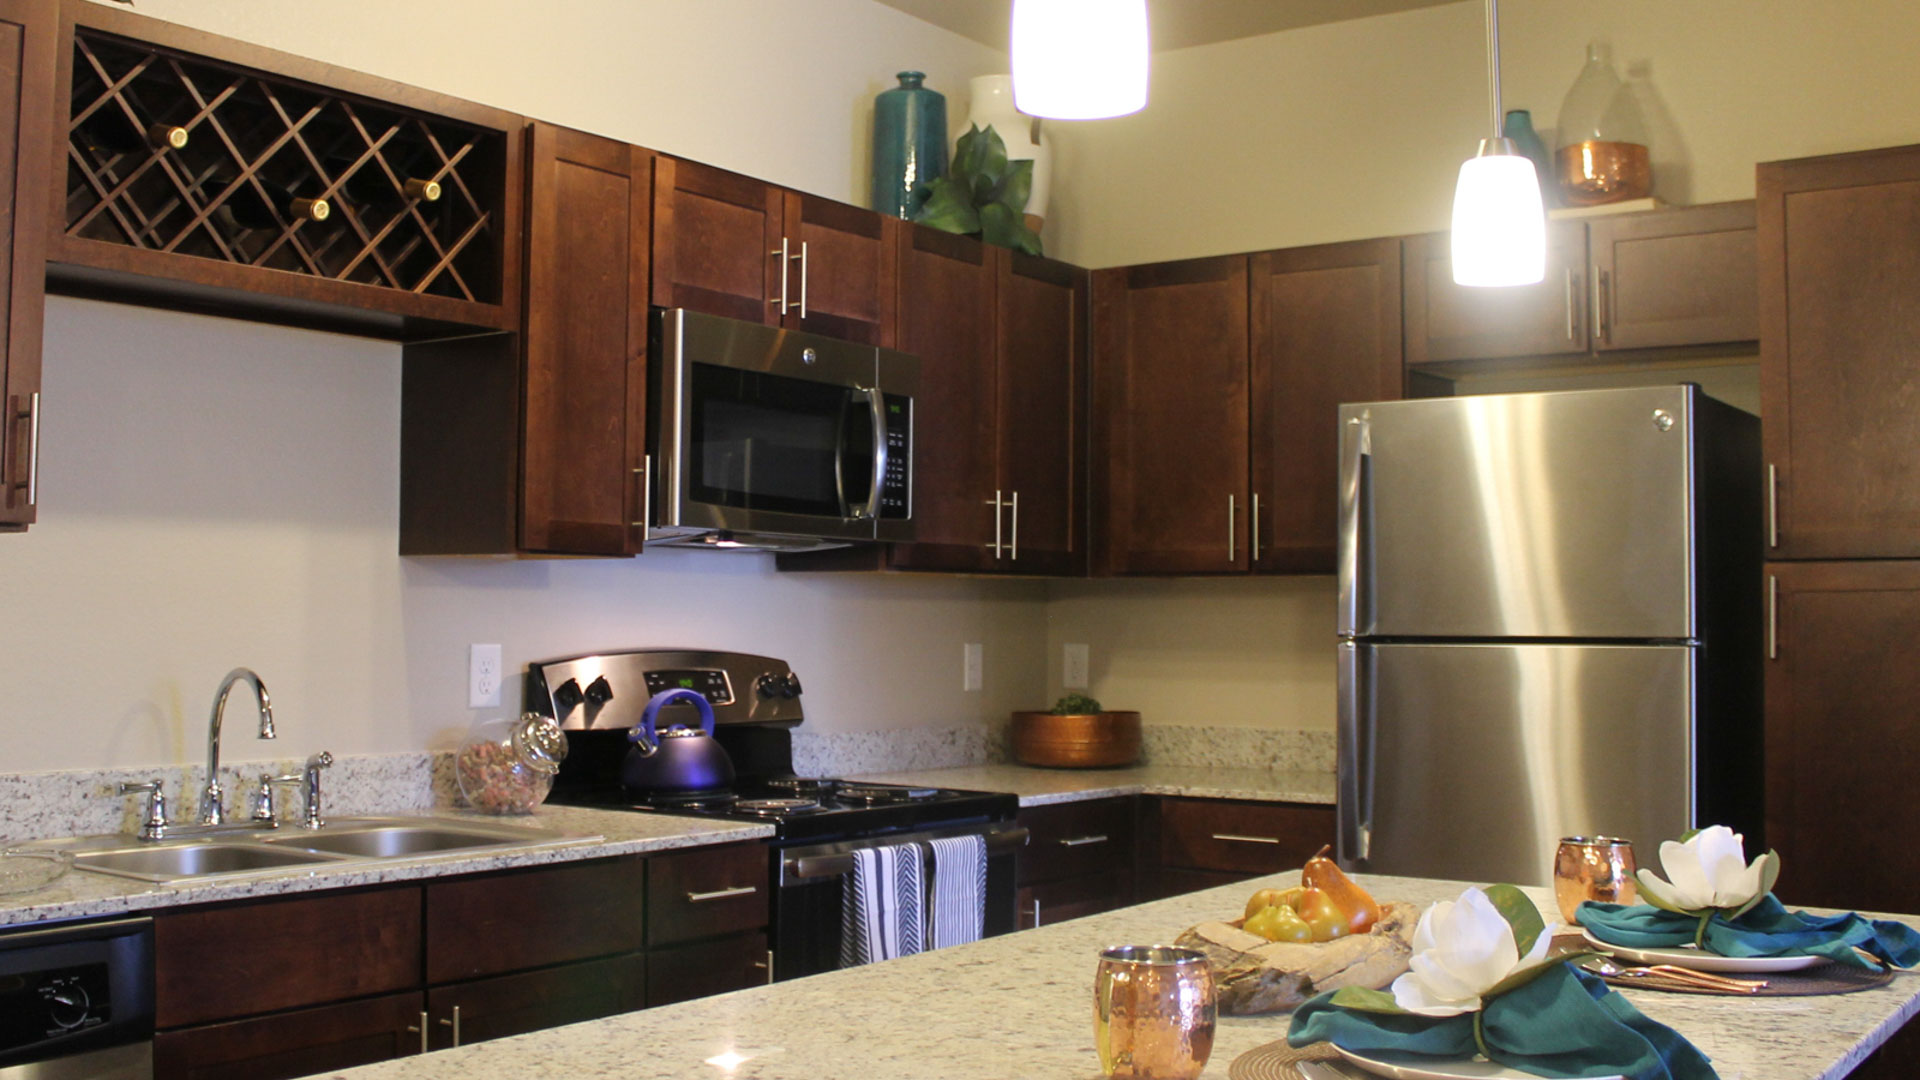 Kitchen with Stainless Steel Appliances at Springs at University Drive Apartments in Bryan, Texas